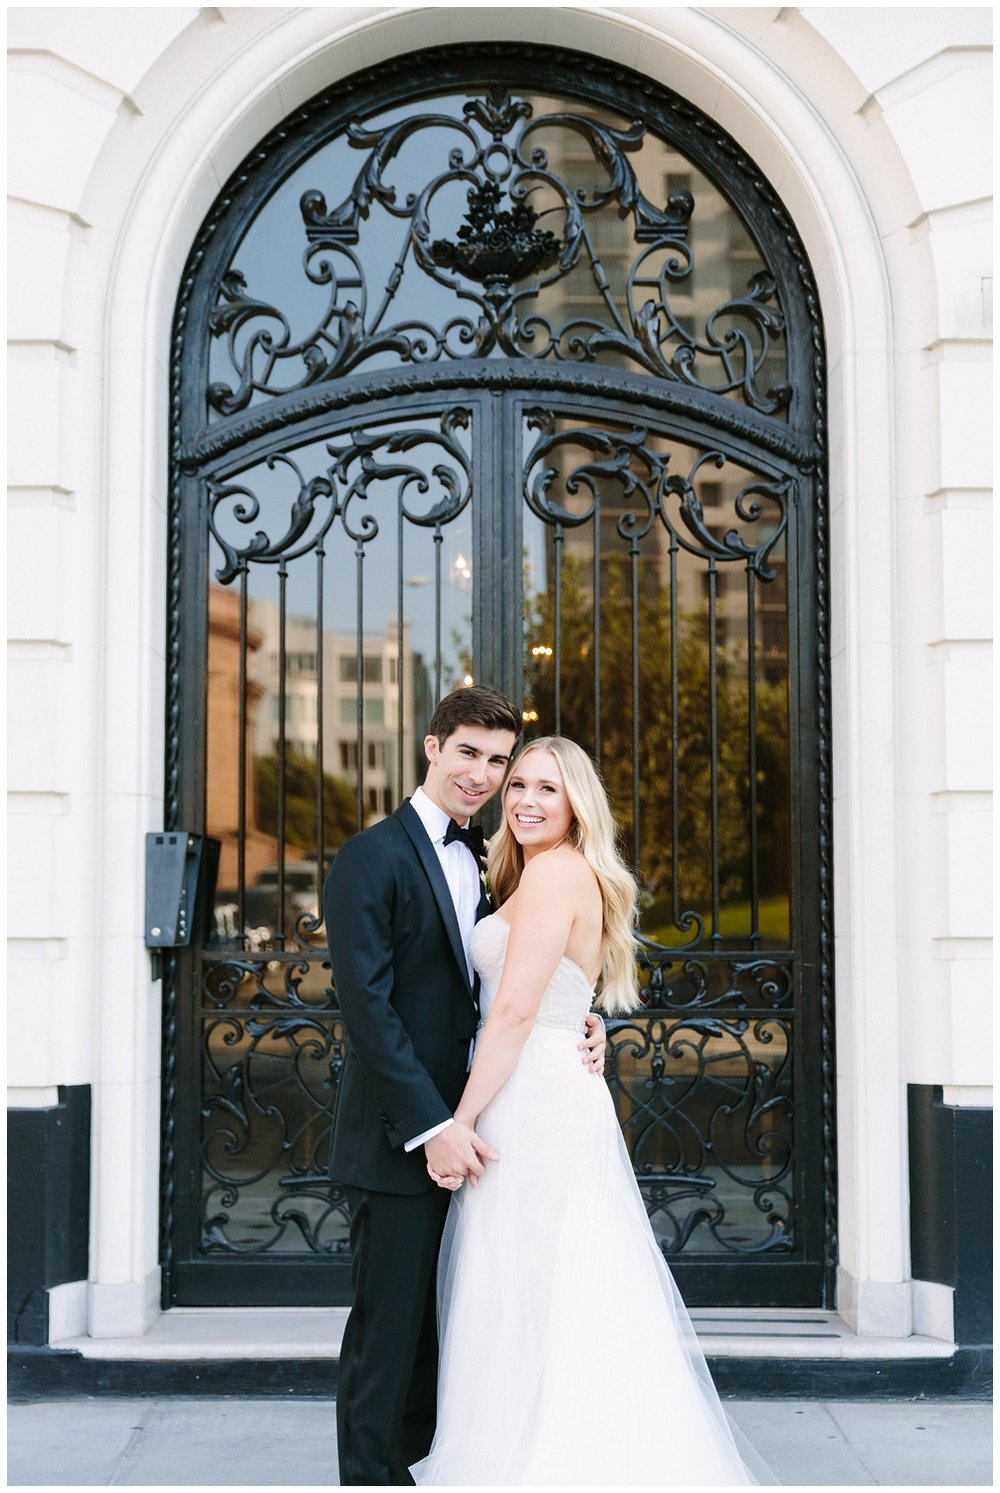 LCphoto-cg-wedding-preview-039_WEB.jpg